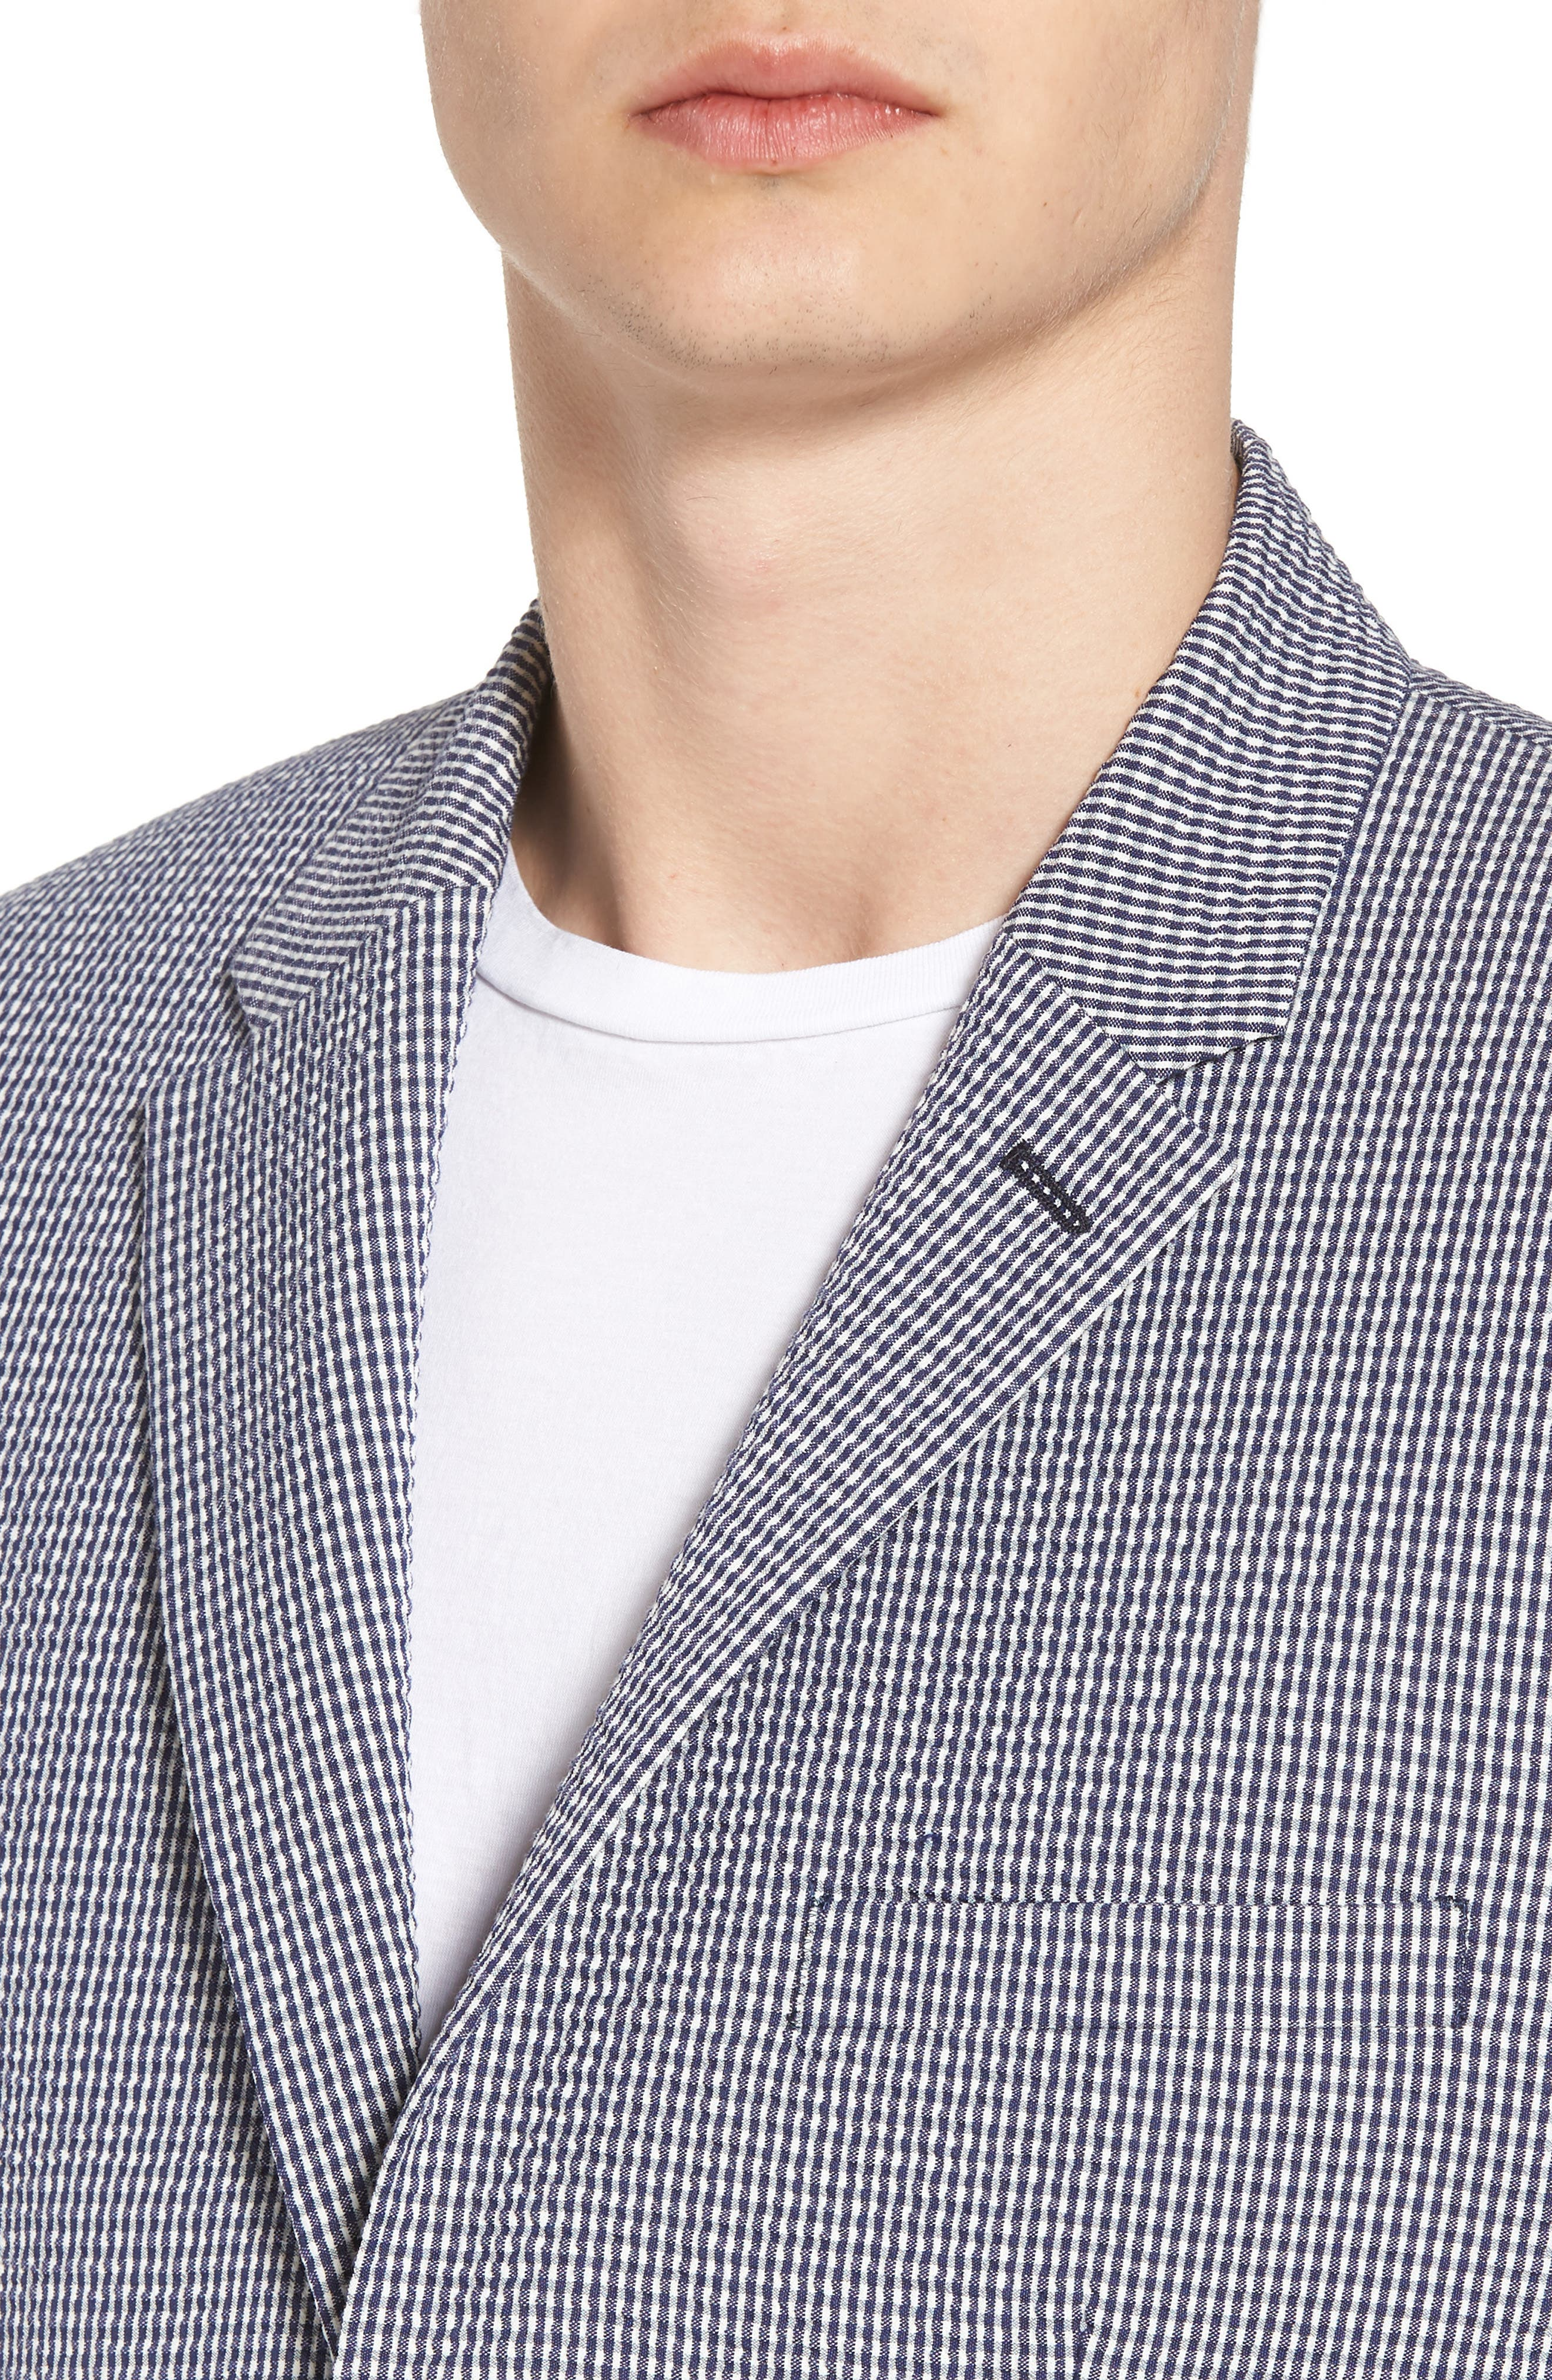 Slim Fit Stretch Seersucker Sport Coat,                             Alternate thumbnail 3, color,                             MARINE BLUE